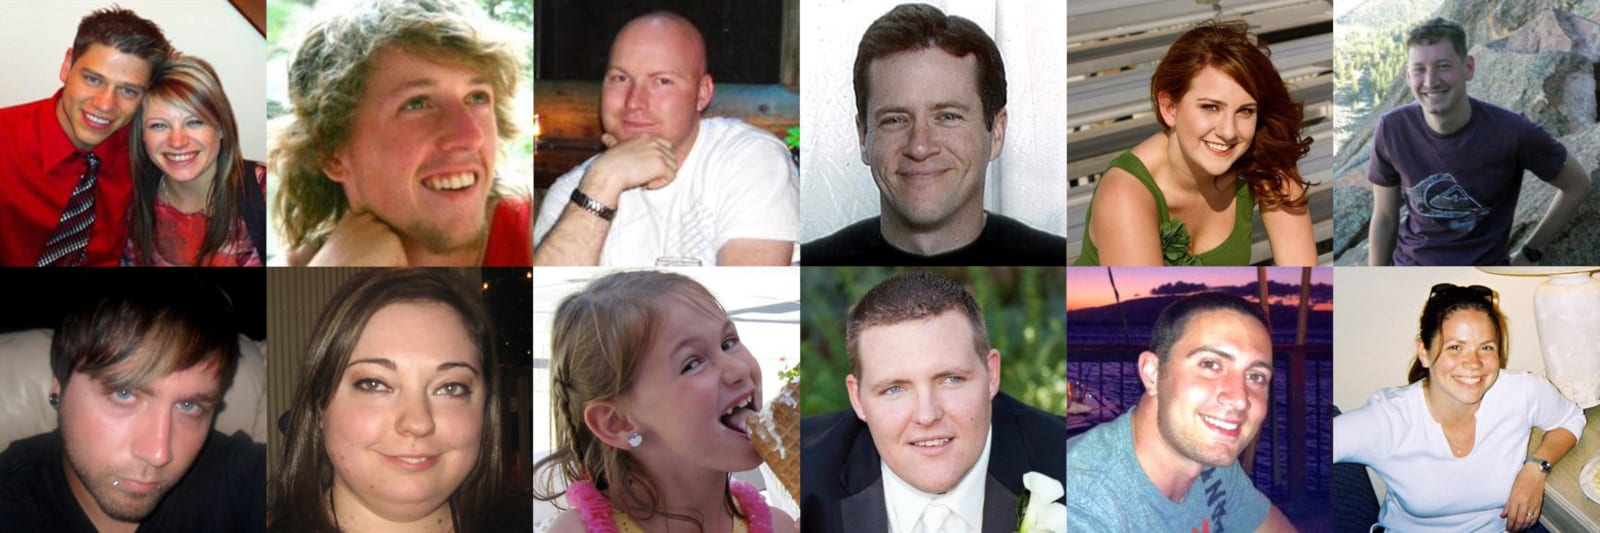 Famous Colorado Murders Aurora Movie Theater Shooting Victims